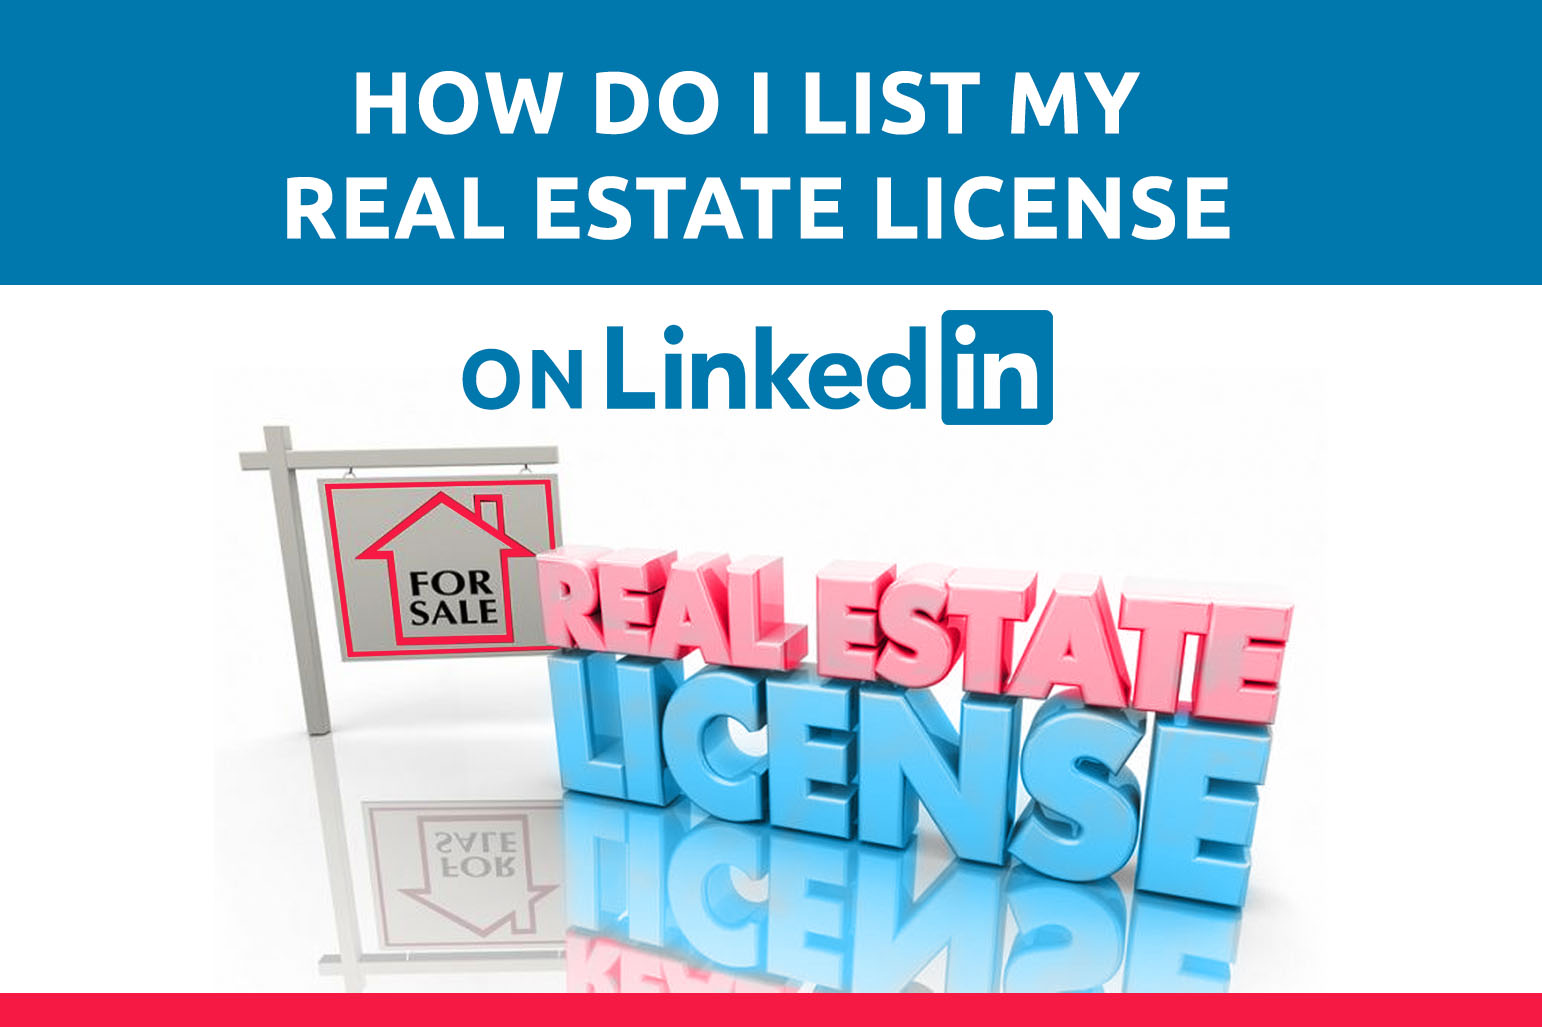 How Do I List My Real Estate License On LinkedIn?